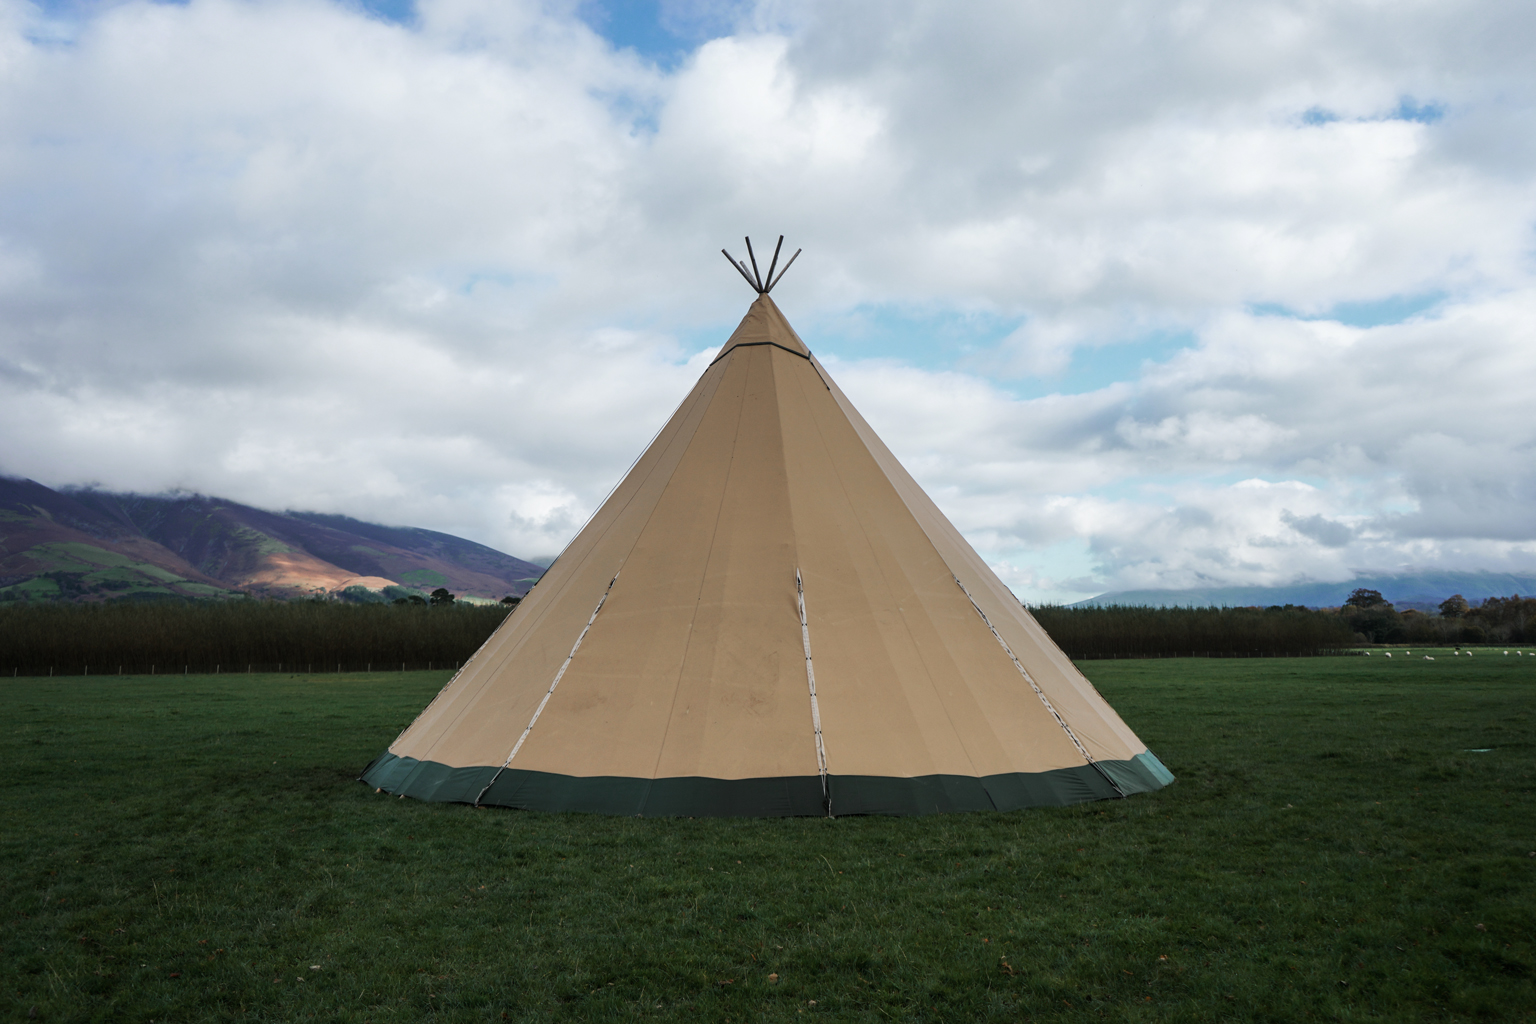 Millican Travellers Collective - In October 2017 our workshops travelled to The Lake District as part of a two day event hosted by Millican. Over a the course of wet and windy weekend, we taught woodcarving as an outdoor skill, gave a talk on how travel has influenced our lives and led a guided nature and tree ID walk around the Whinlatter Forest. Read more about our weekend with Millican on our recent blog post here.